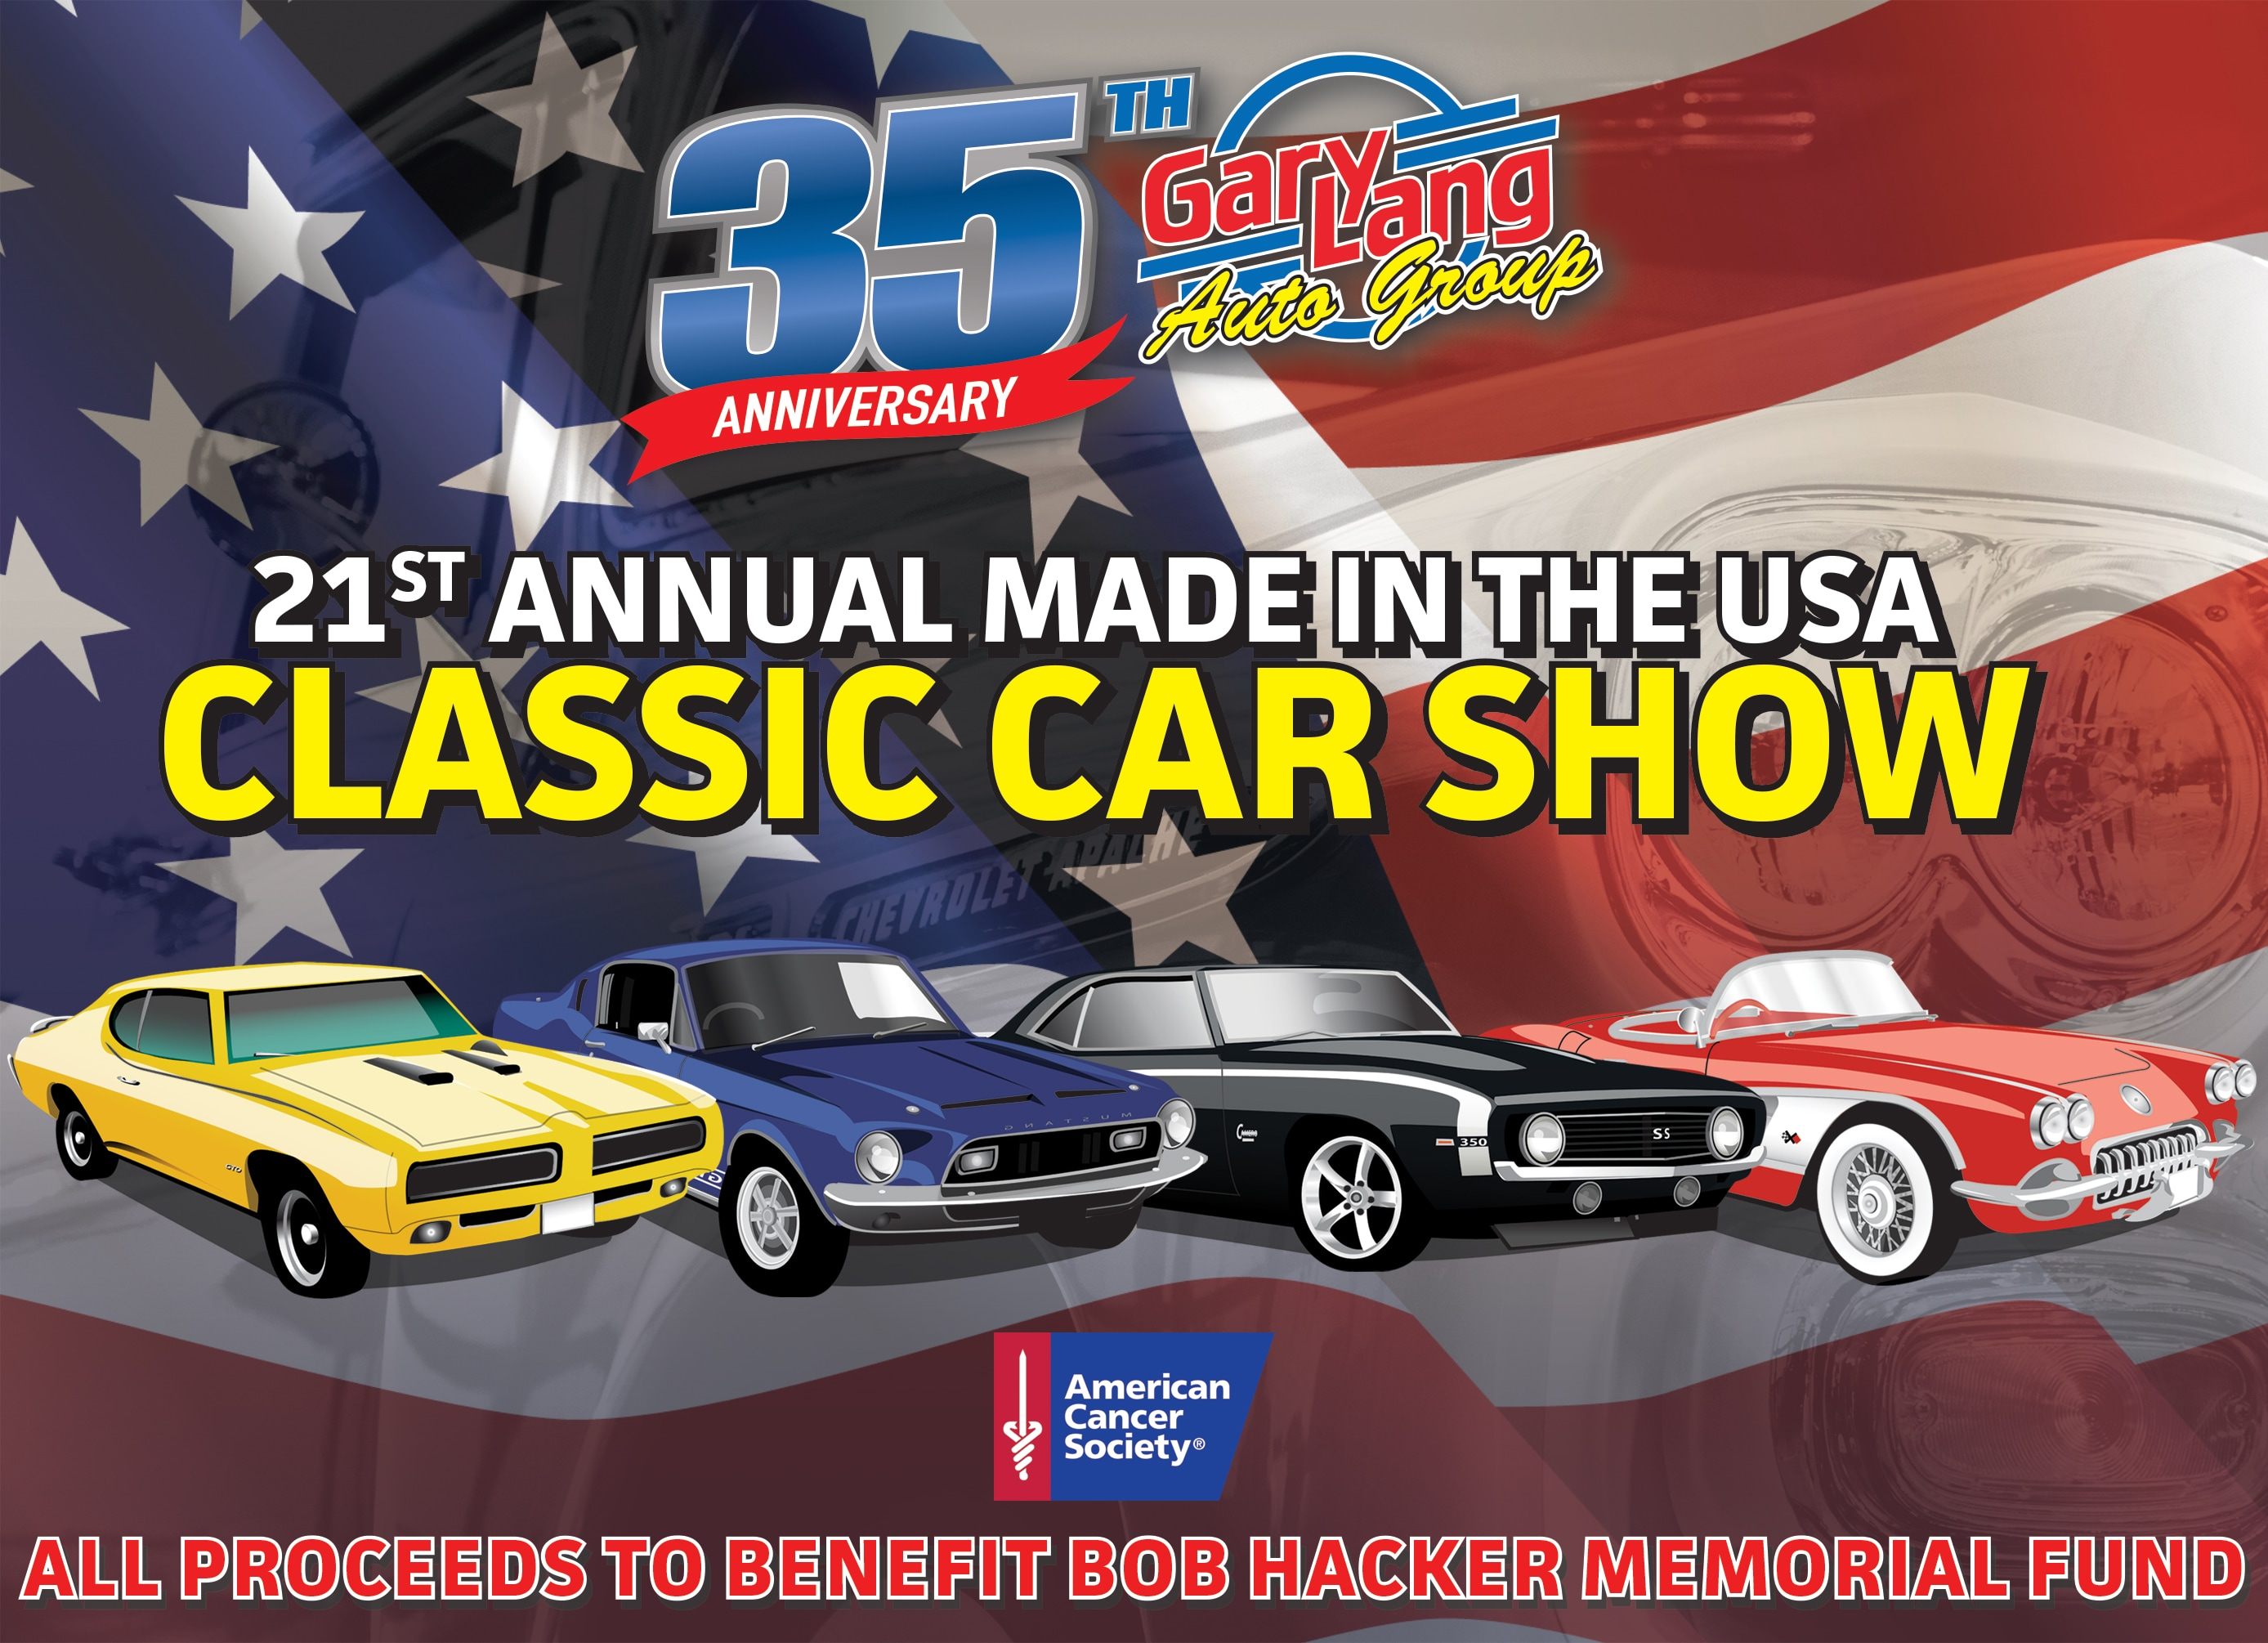 Classic Car Show at Gary Lang Auto Group | McHenry, IL